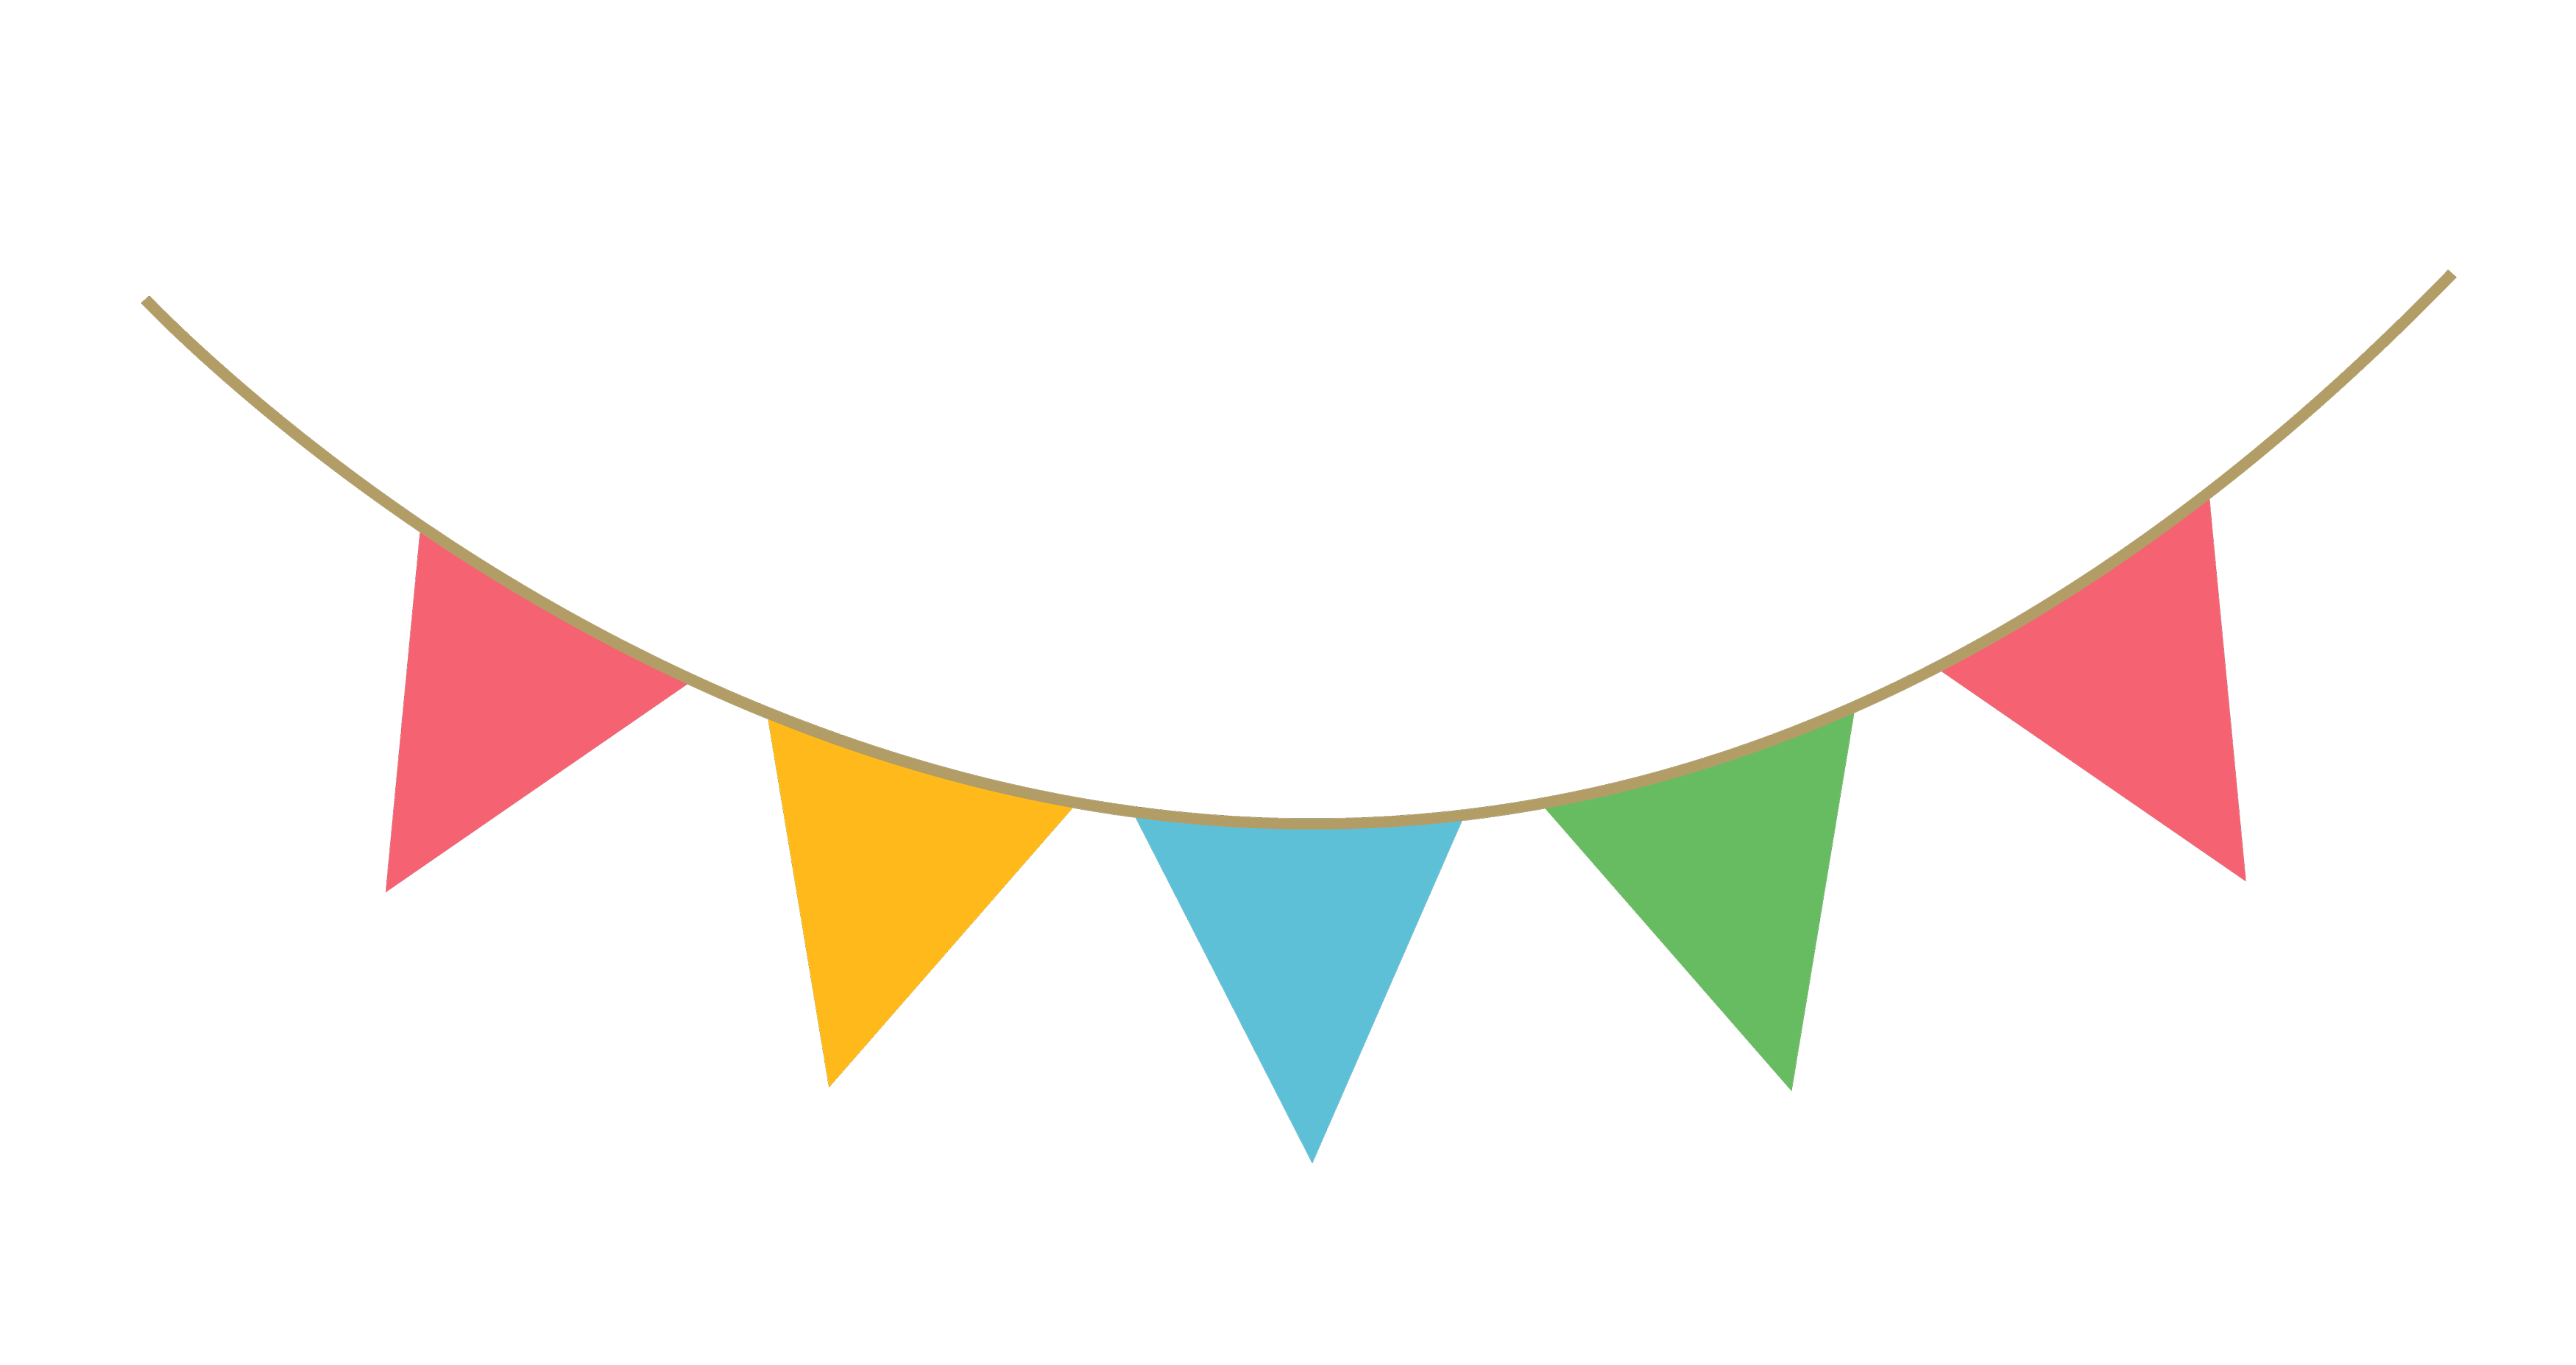 Birthday streamers png. Party streamer decoration image